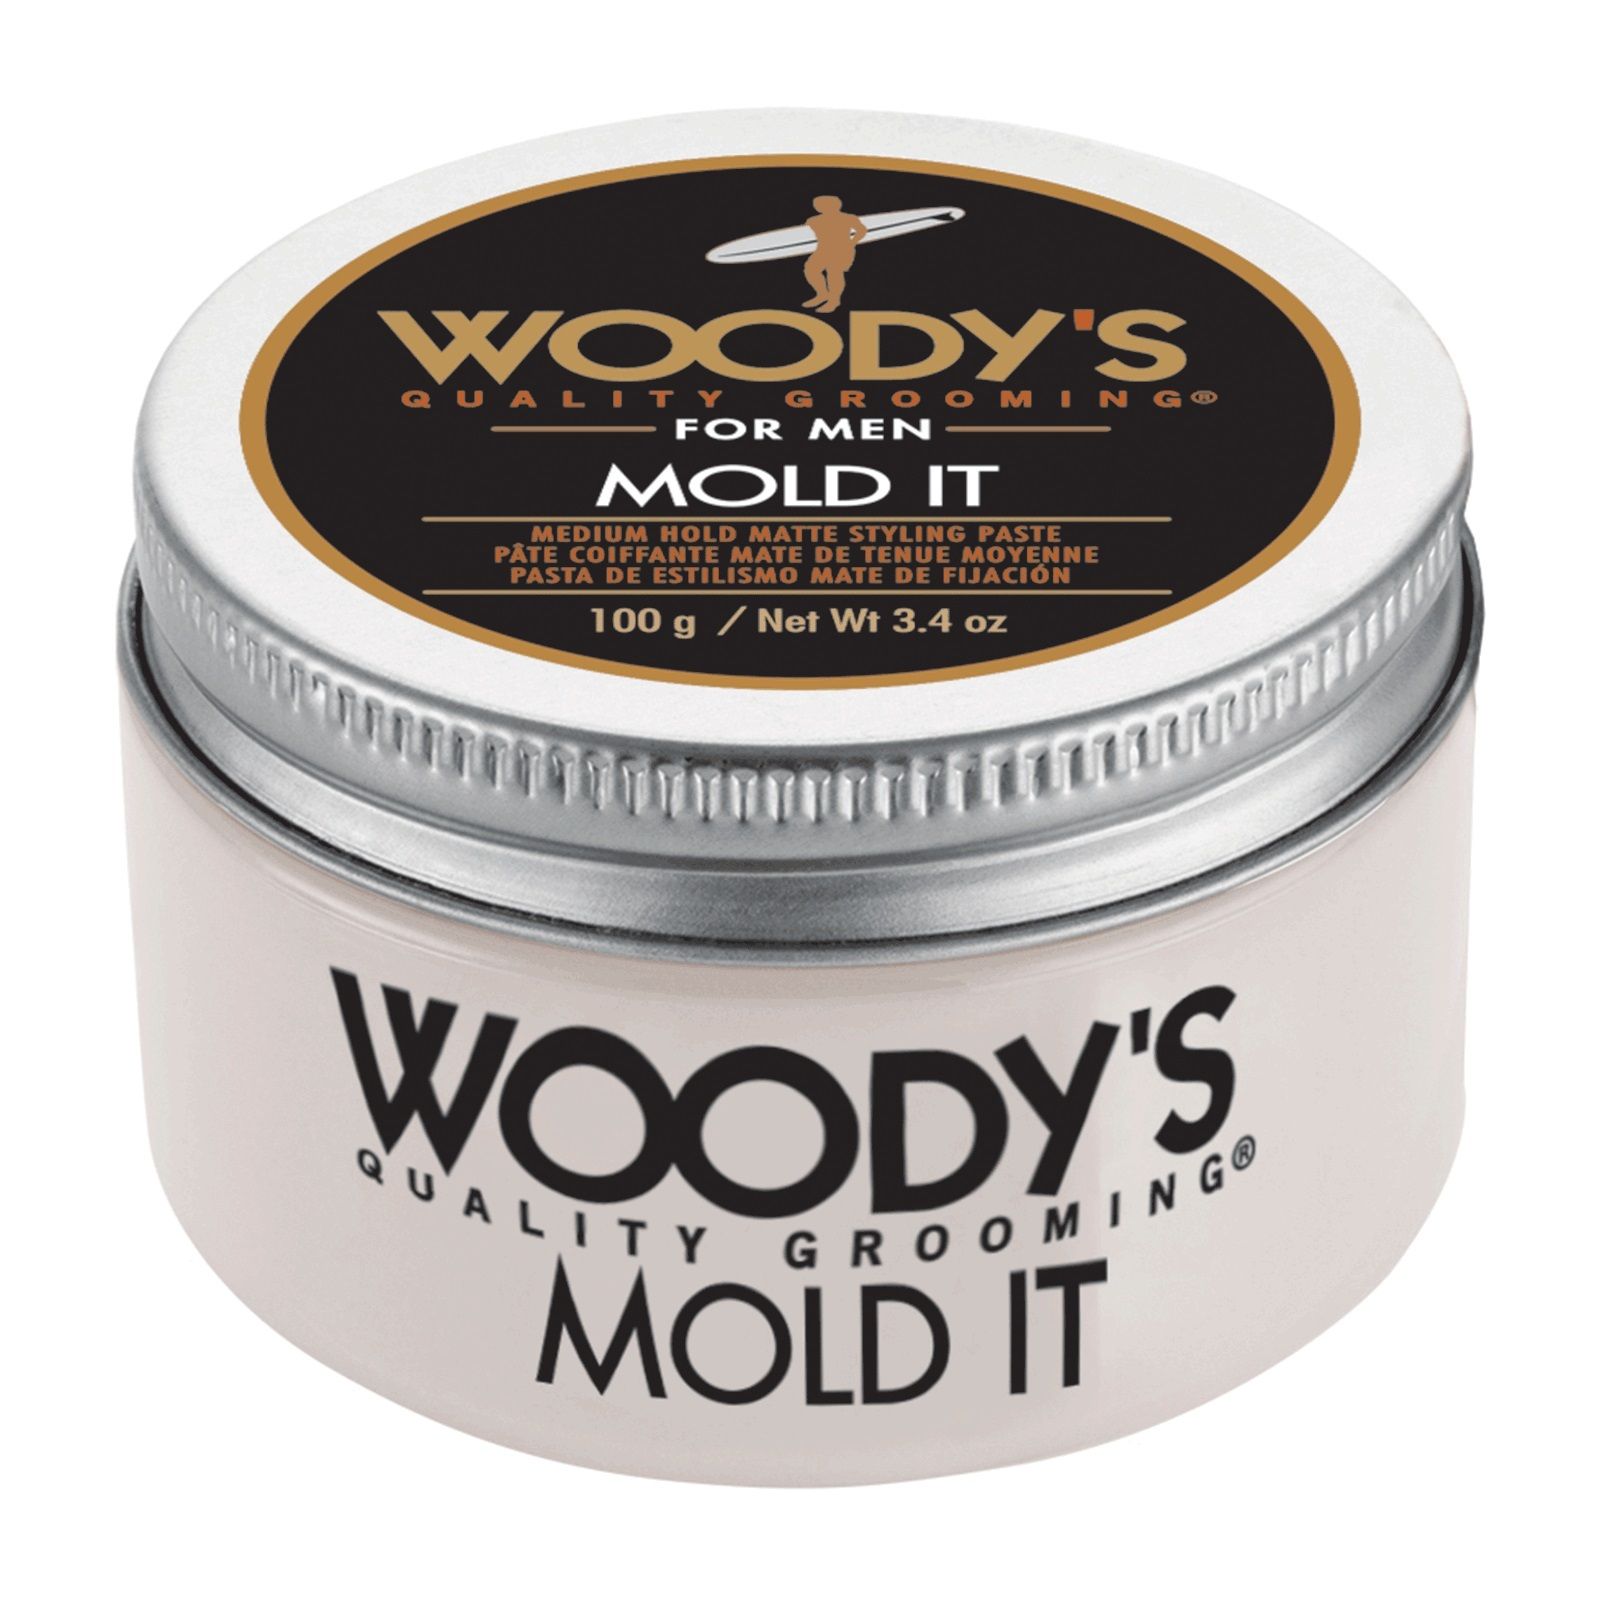 Woody's Mold It Matte Styling Paste 3.4oz image 2